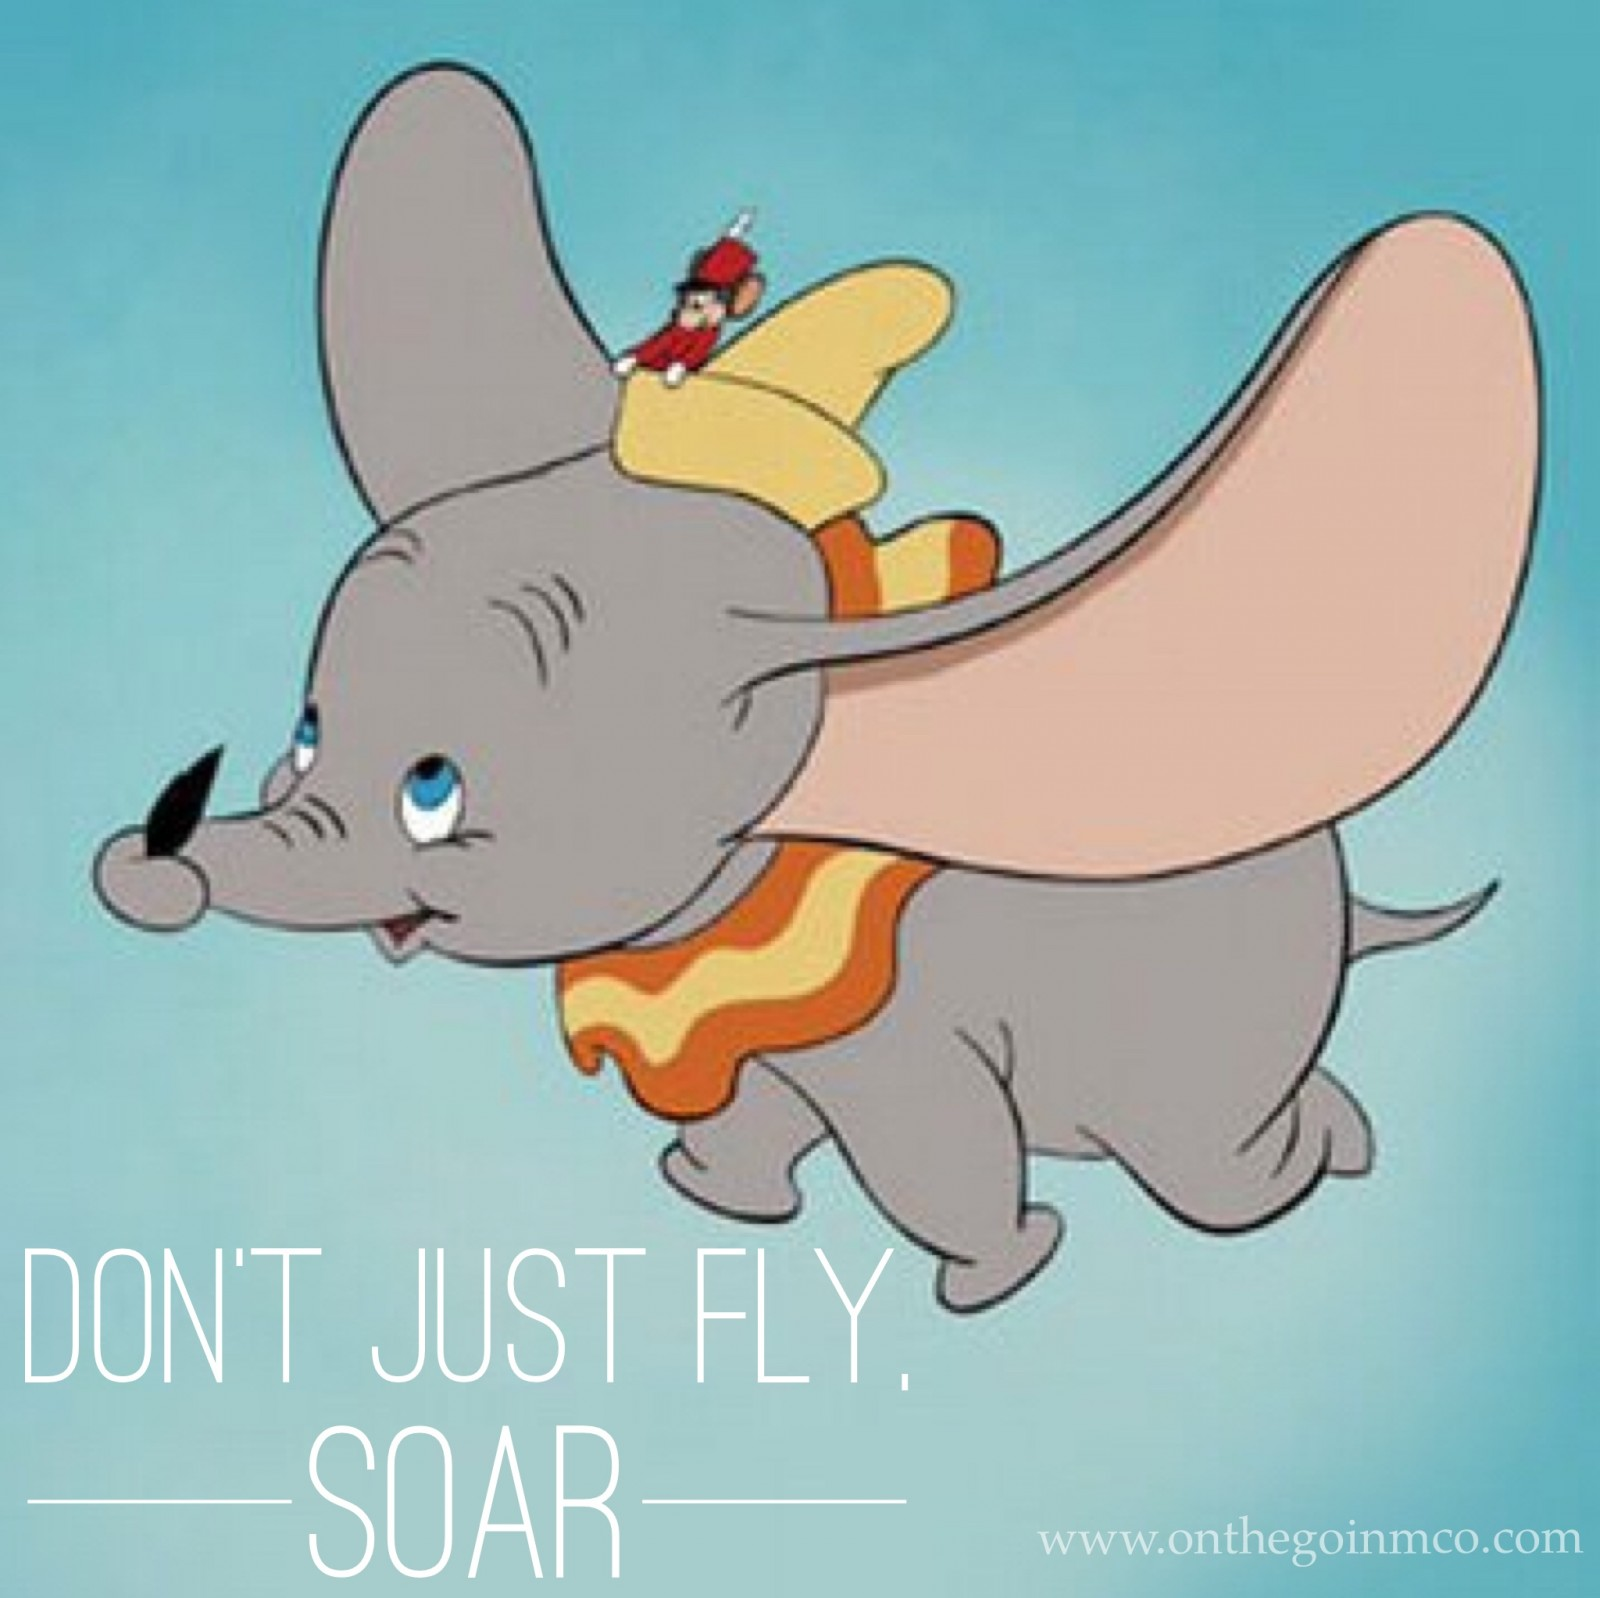 Disney Movie Quotes After a long week Dumbo